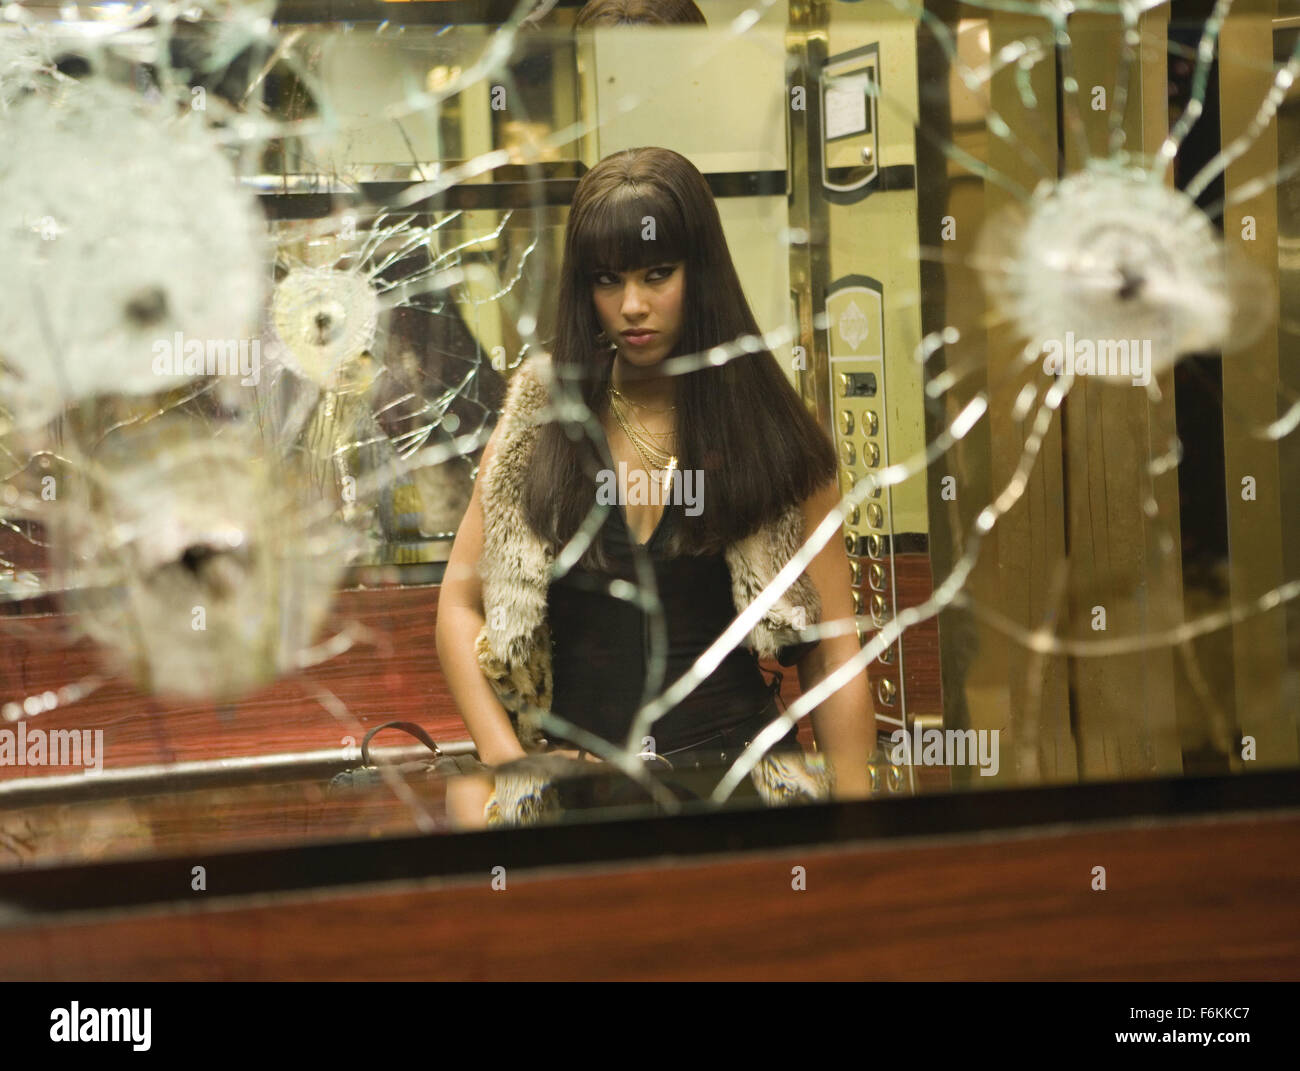 RELEASE DATE: January 26, 2007. MOVIE TITLE: Smokin Aces. STUDIO: Universal Pictures. PLOT: When a Las Vegas performer - Stock Image